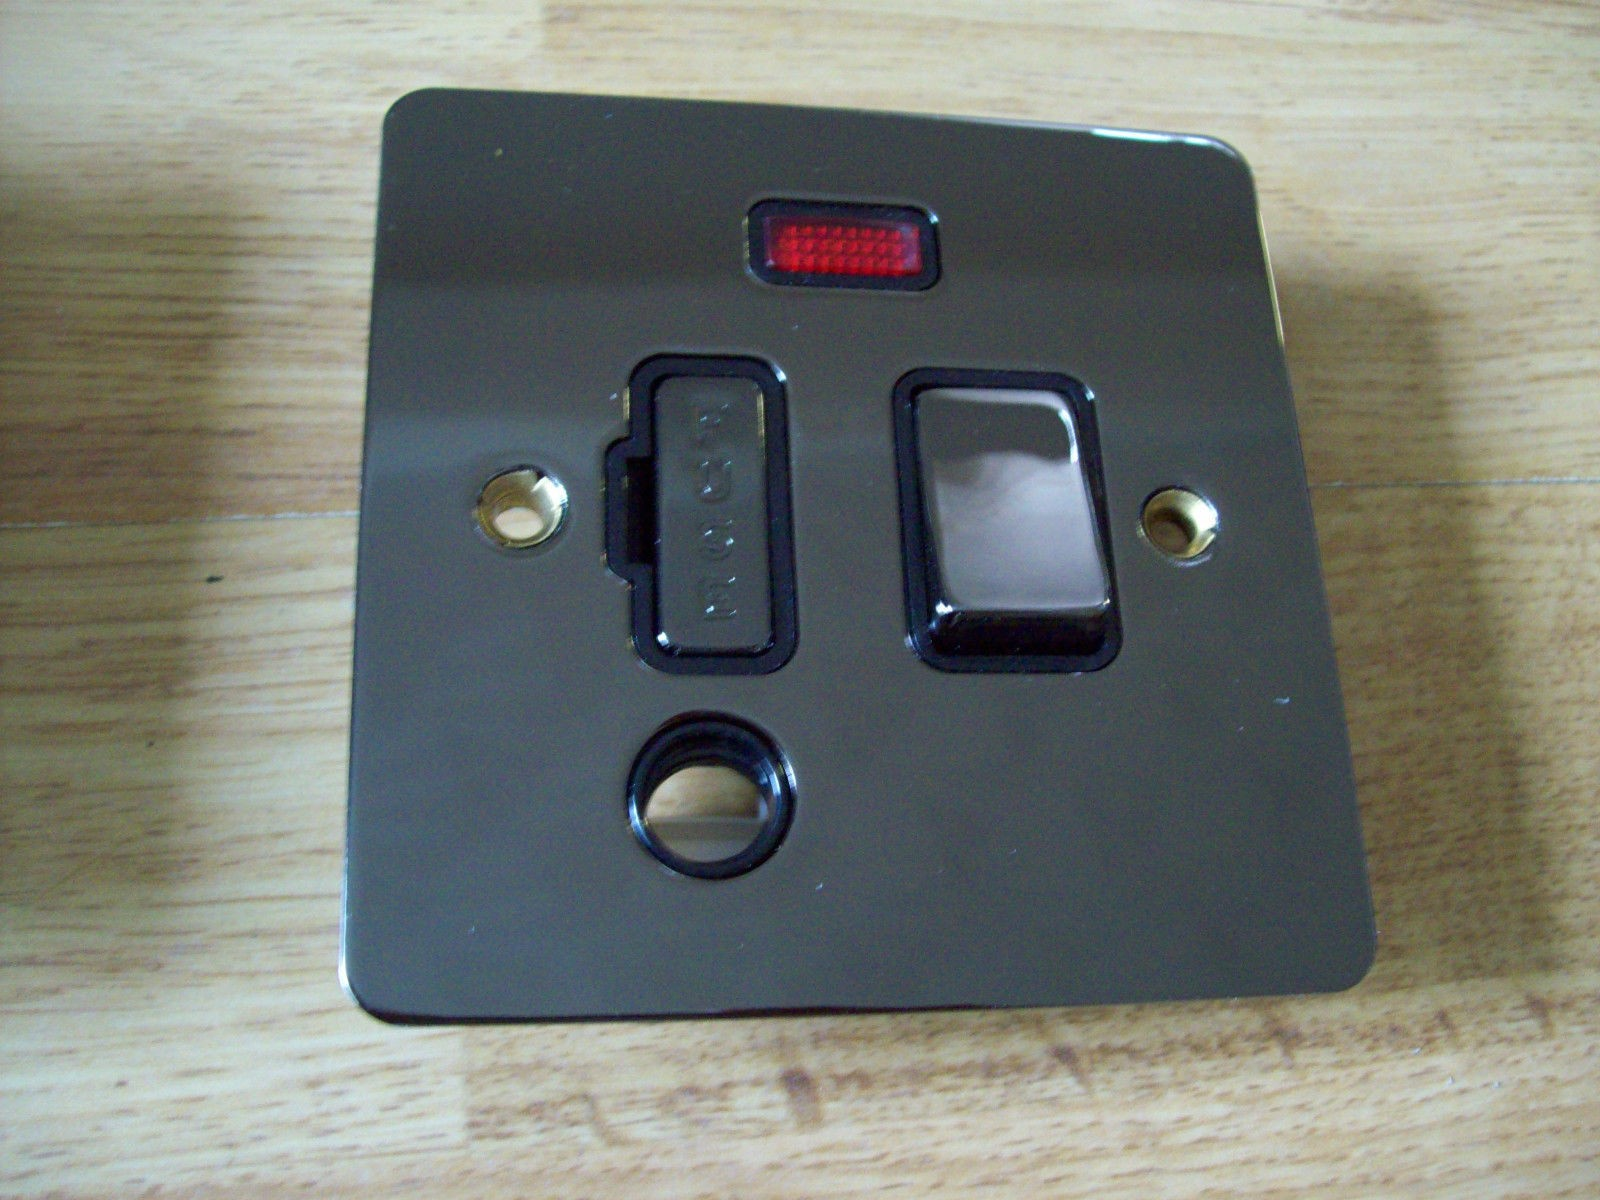 13 Amp Neon Fused Spur Outlet In Polished Black Nickel Finish